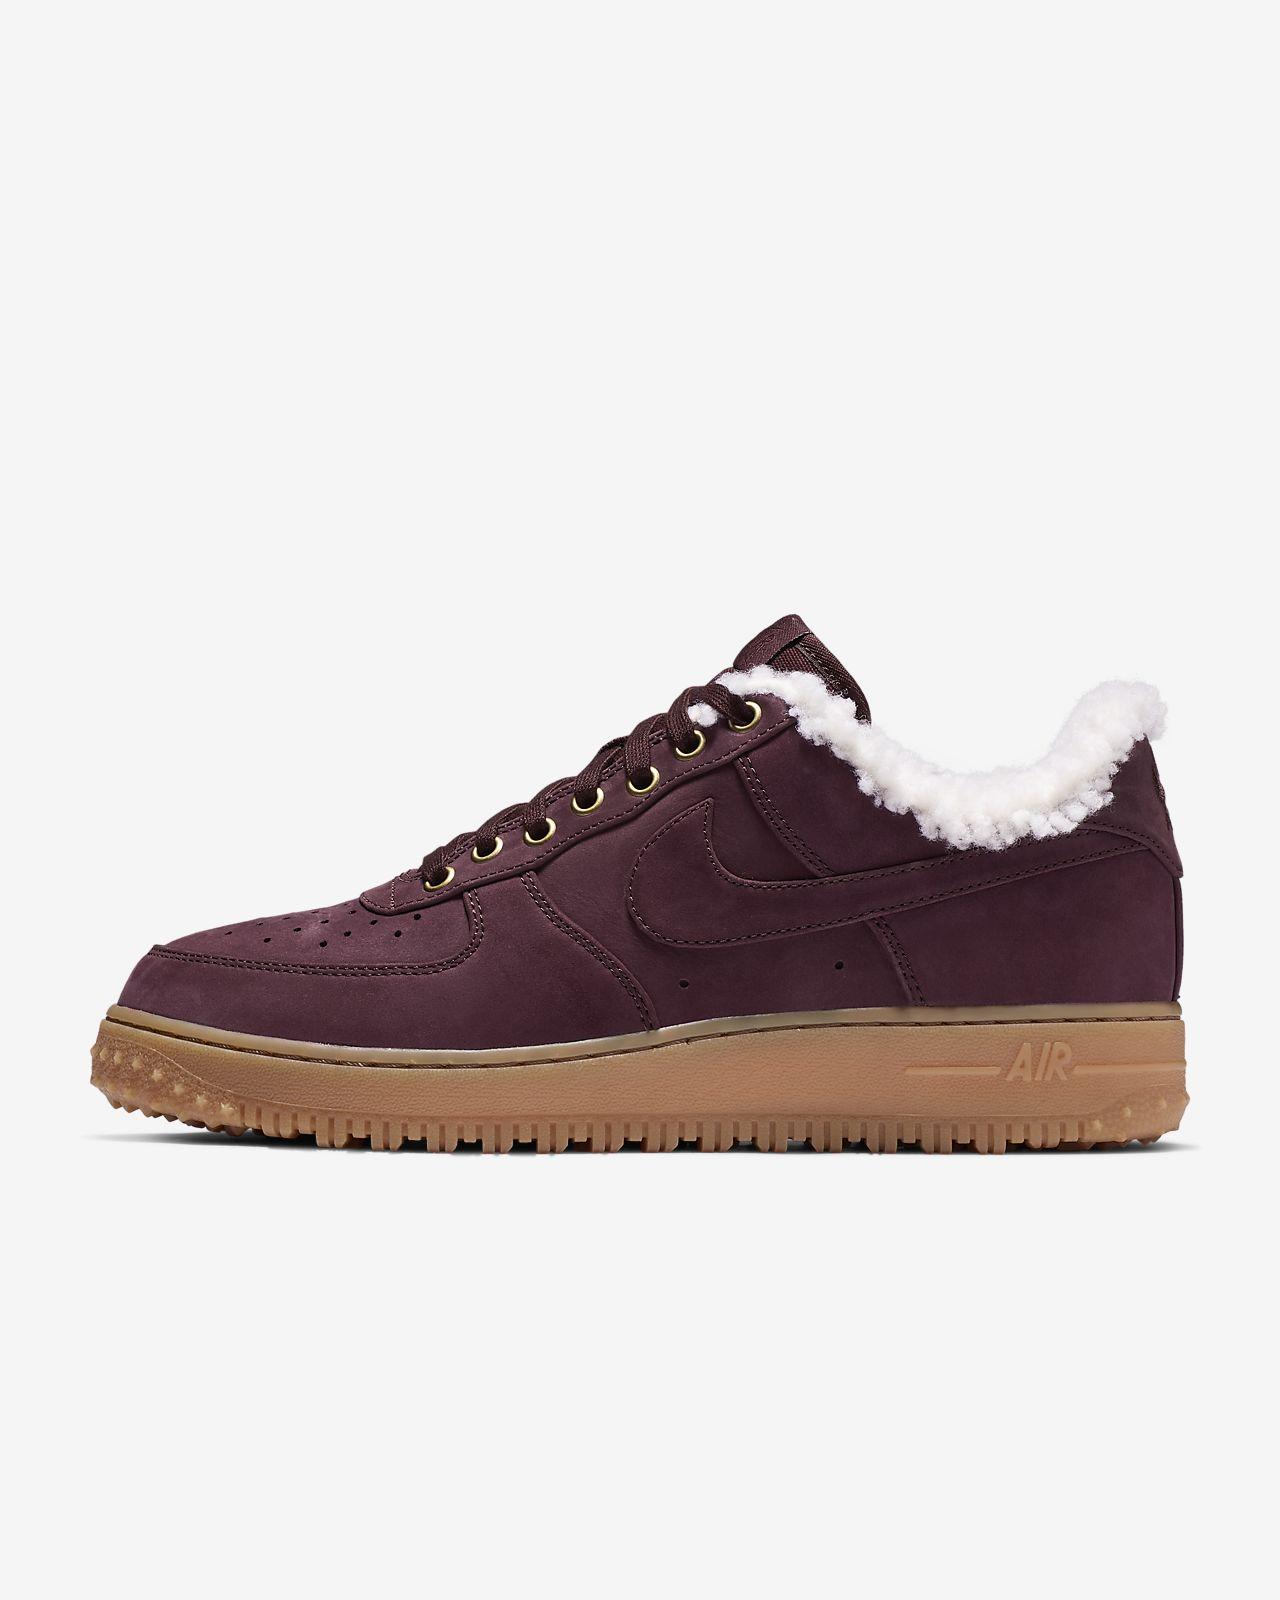 Chaussure Nike Air Force 1 Premium Winter pour Homme